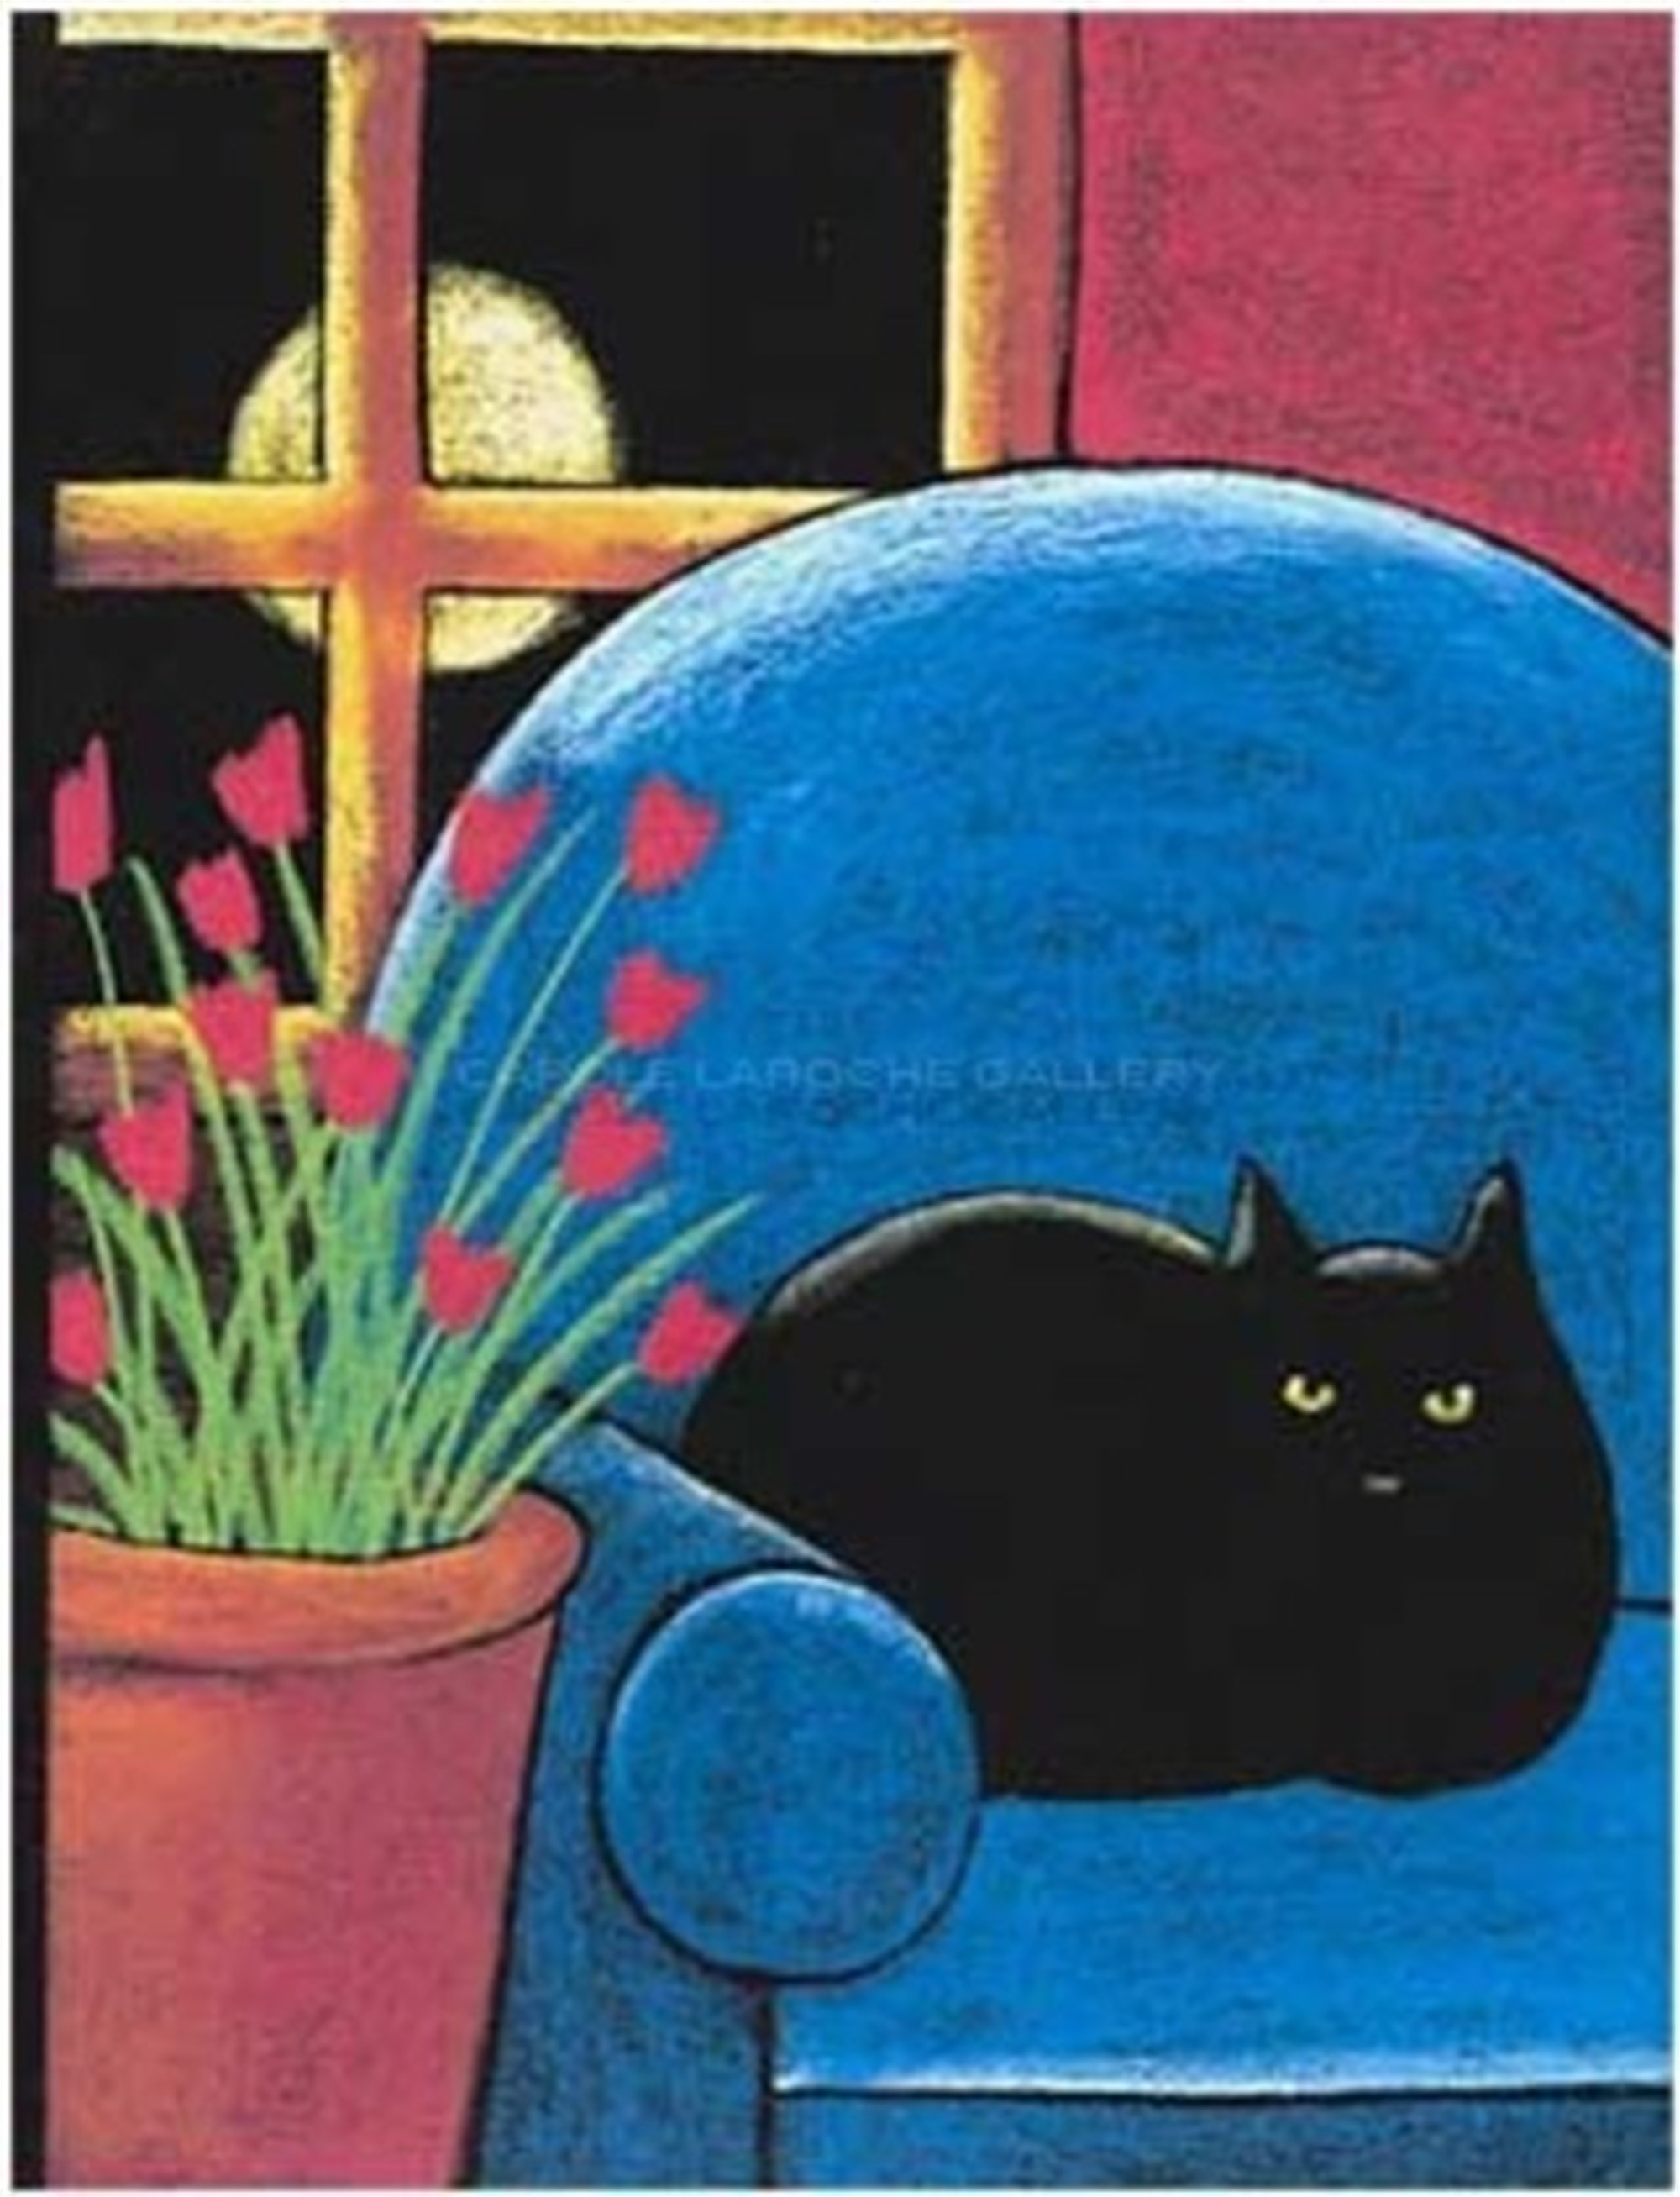 BLACK CAT IN BLUE CHAIR by Carole LaRoche